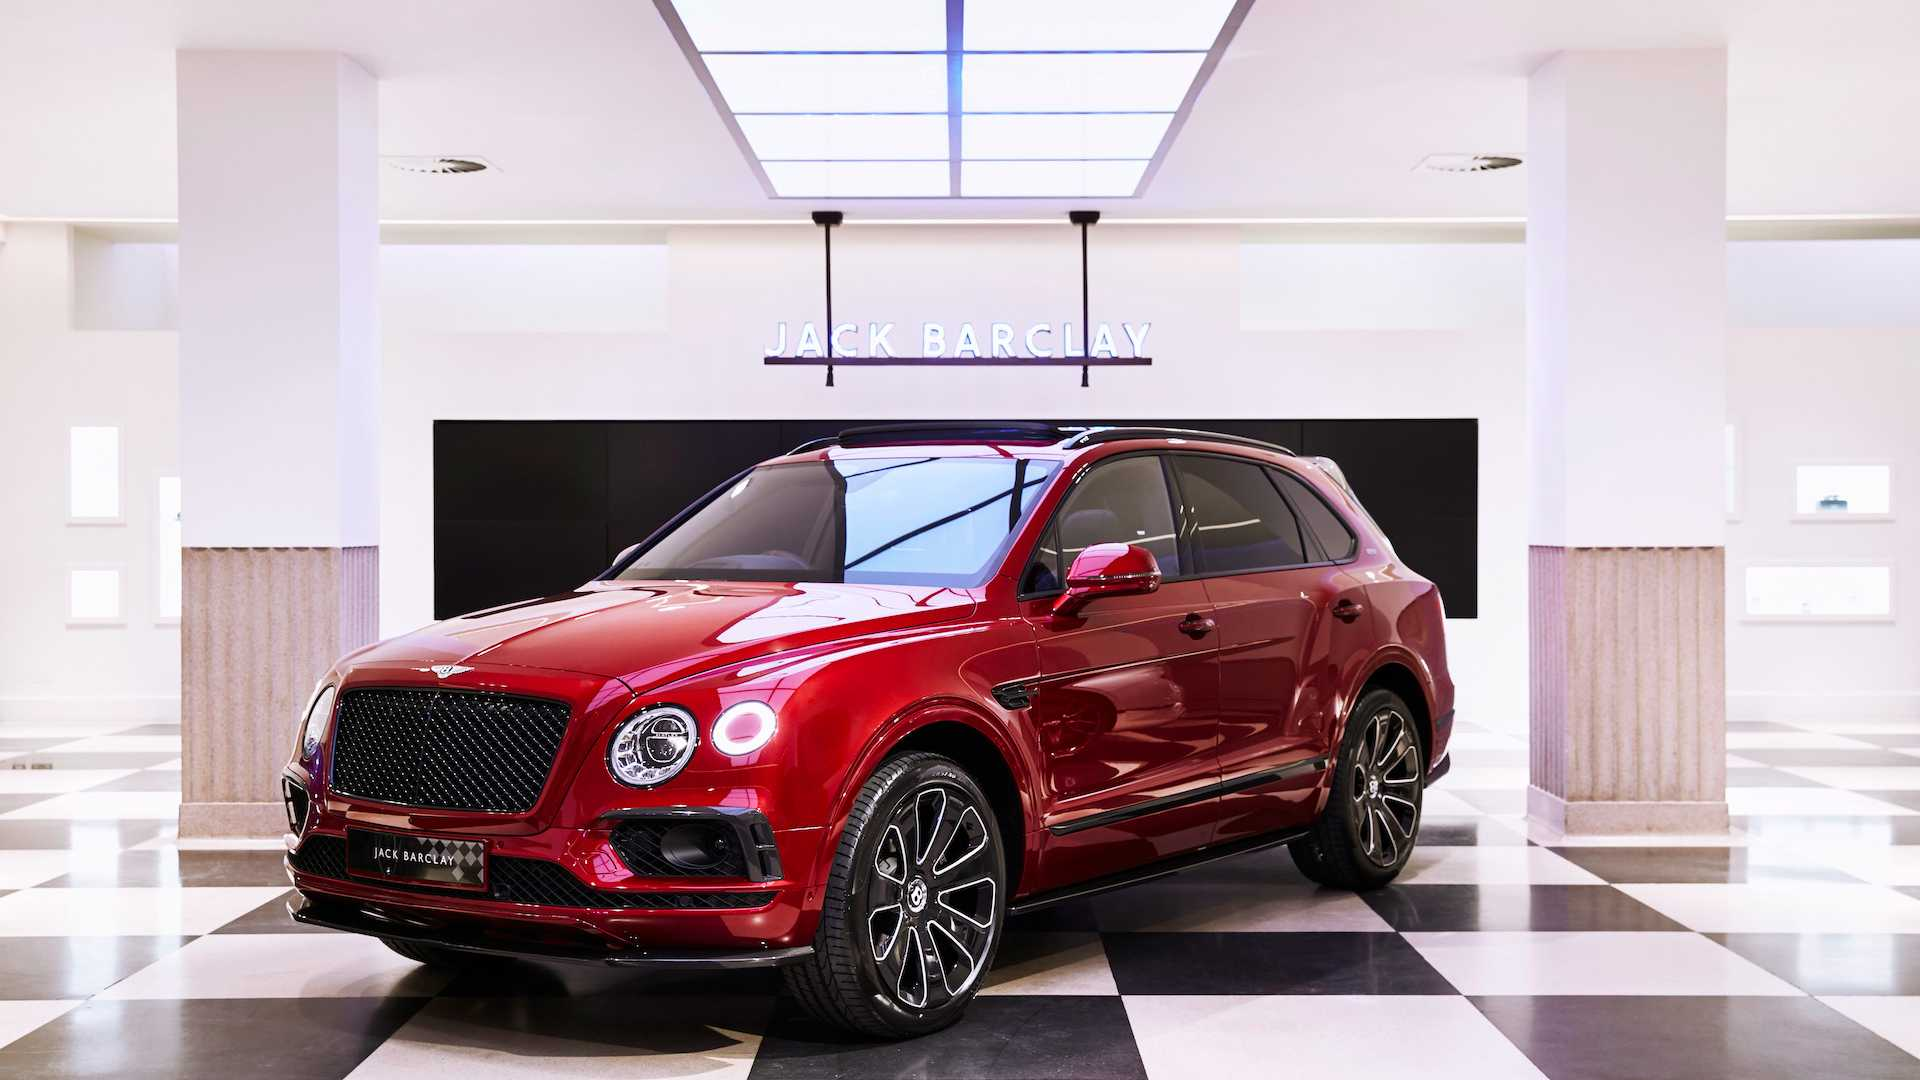 Bentley Bentayga_Huntsman_Savile Row_Jack Barclay_limited special edition